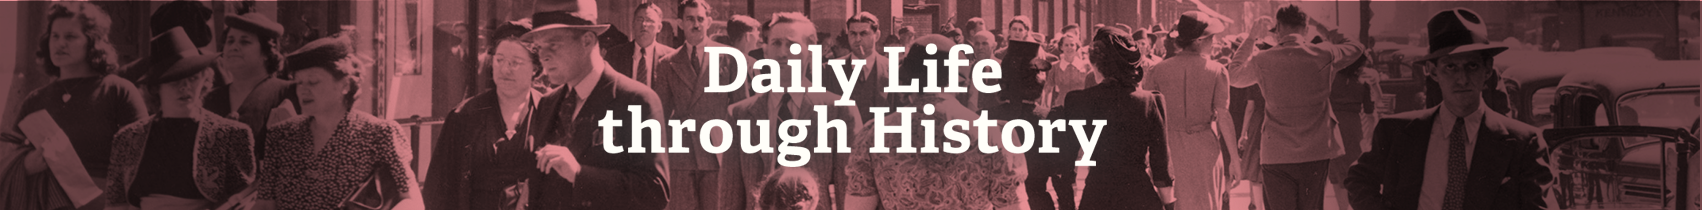 ABC-CLIO Solutions - Daily Life through History